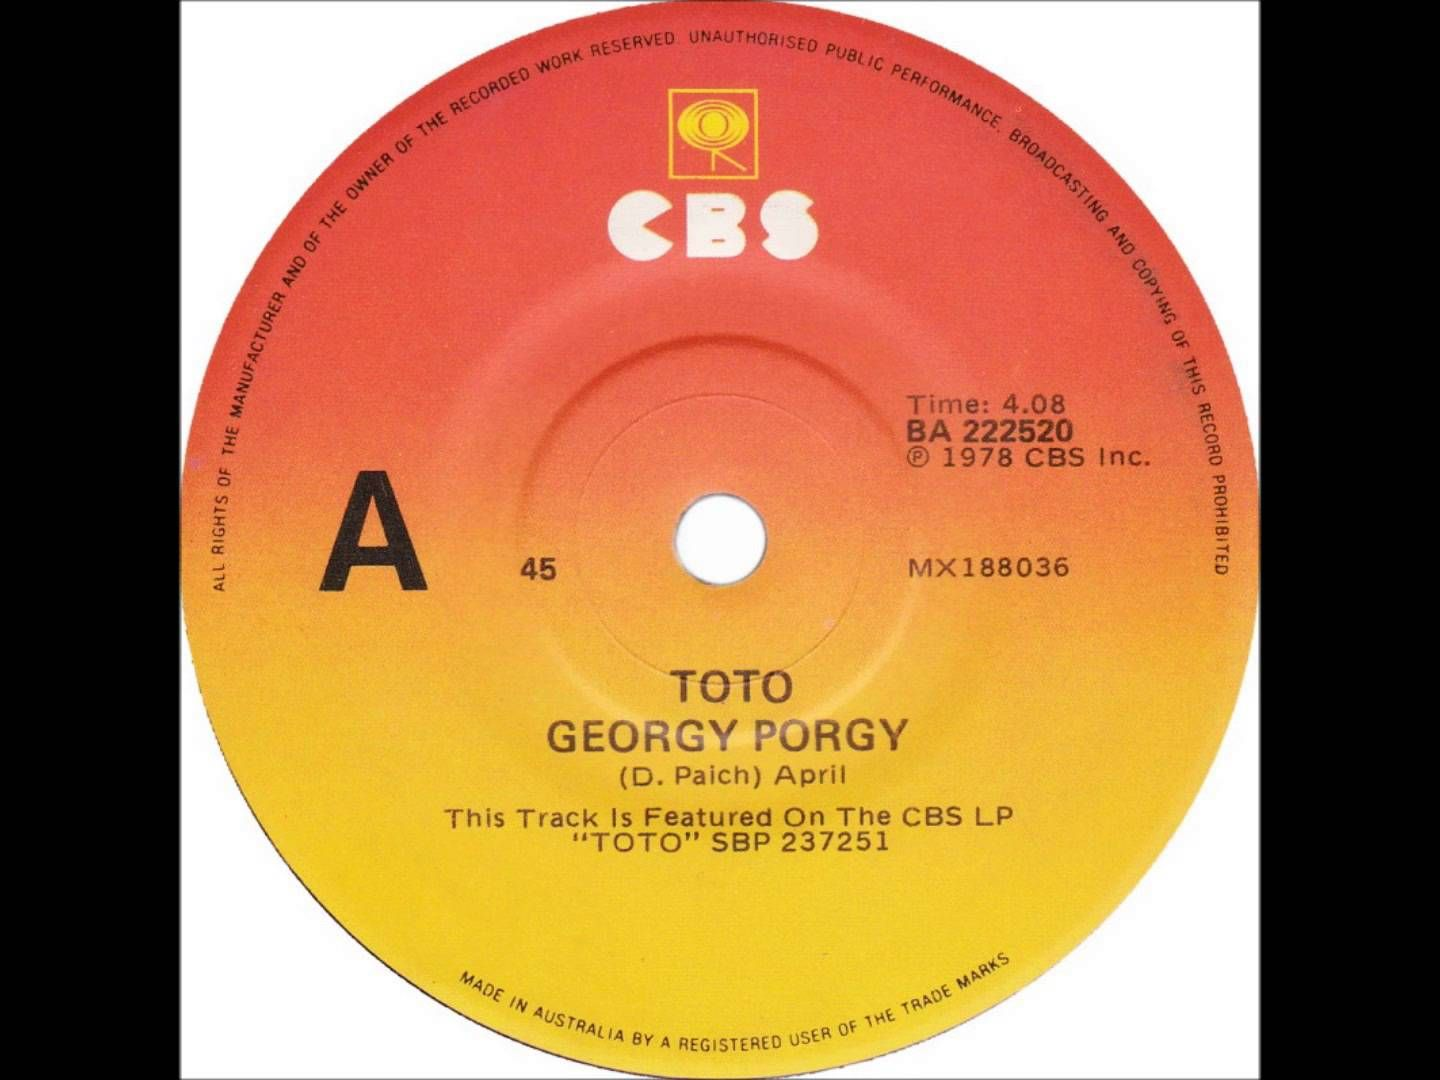 Toto - Georgy Porgy (Dj \